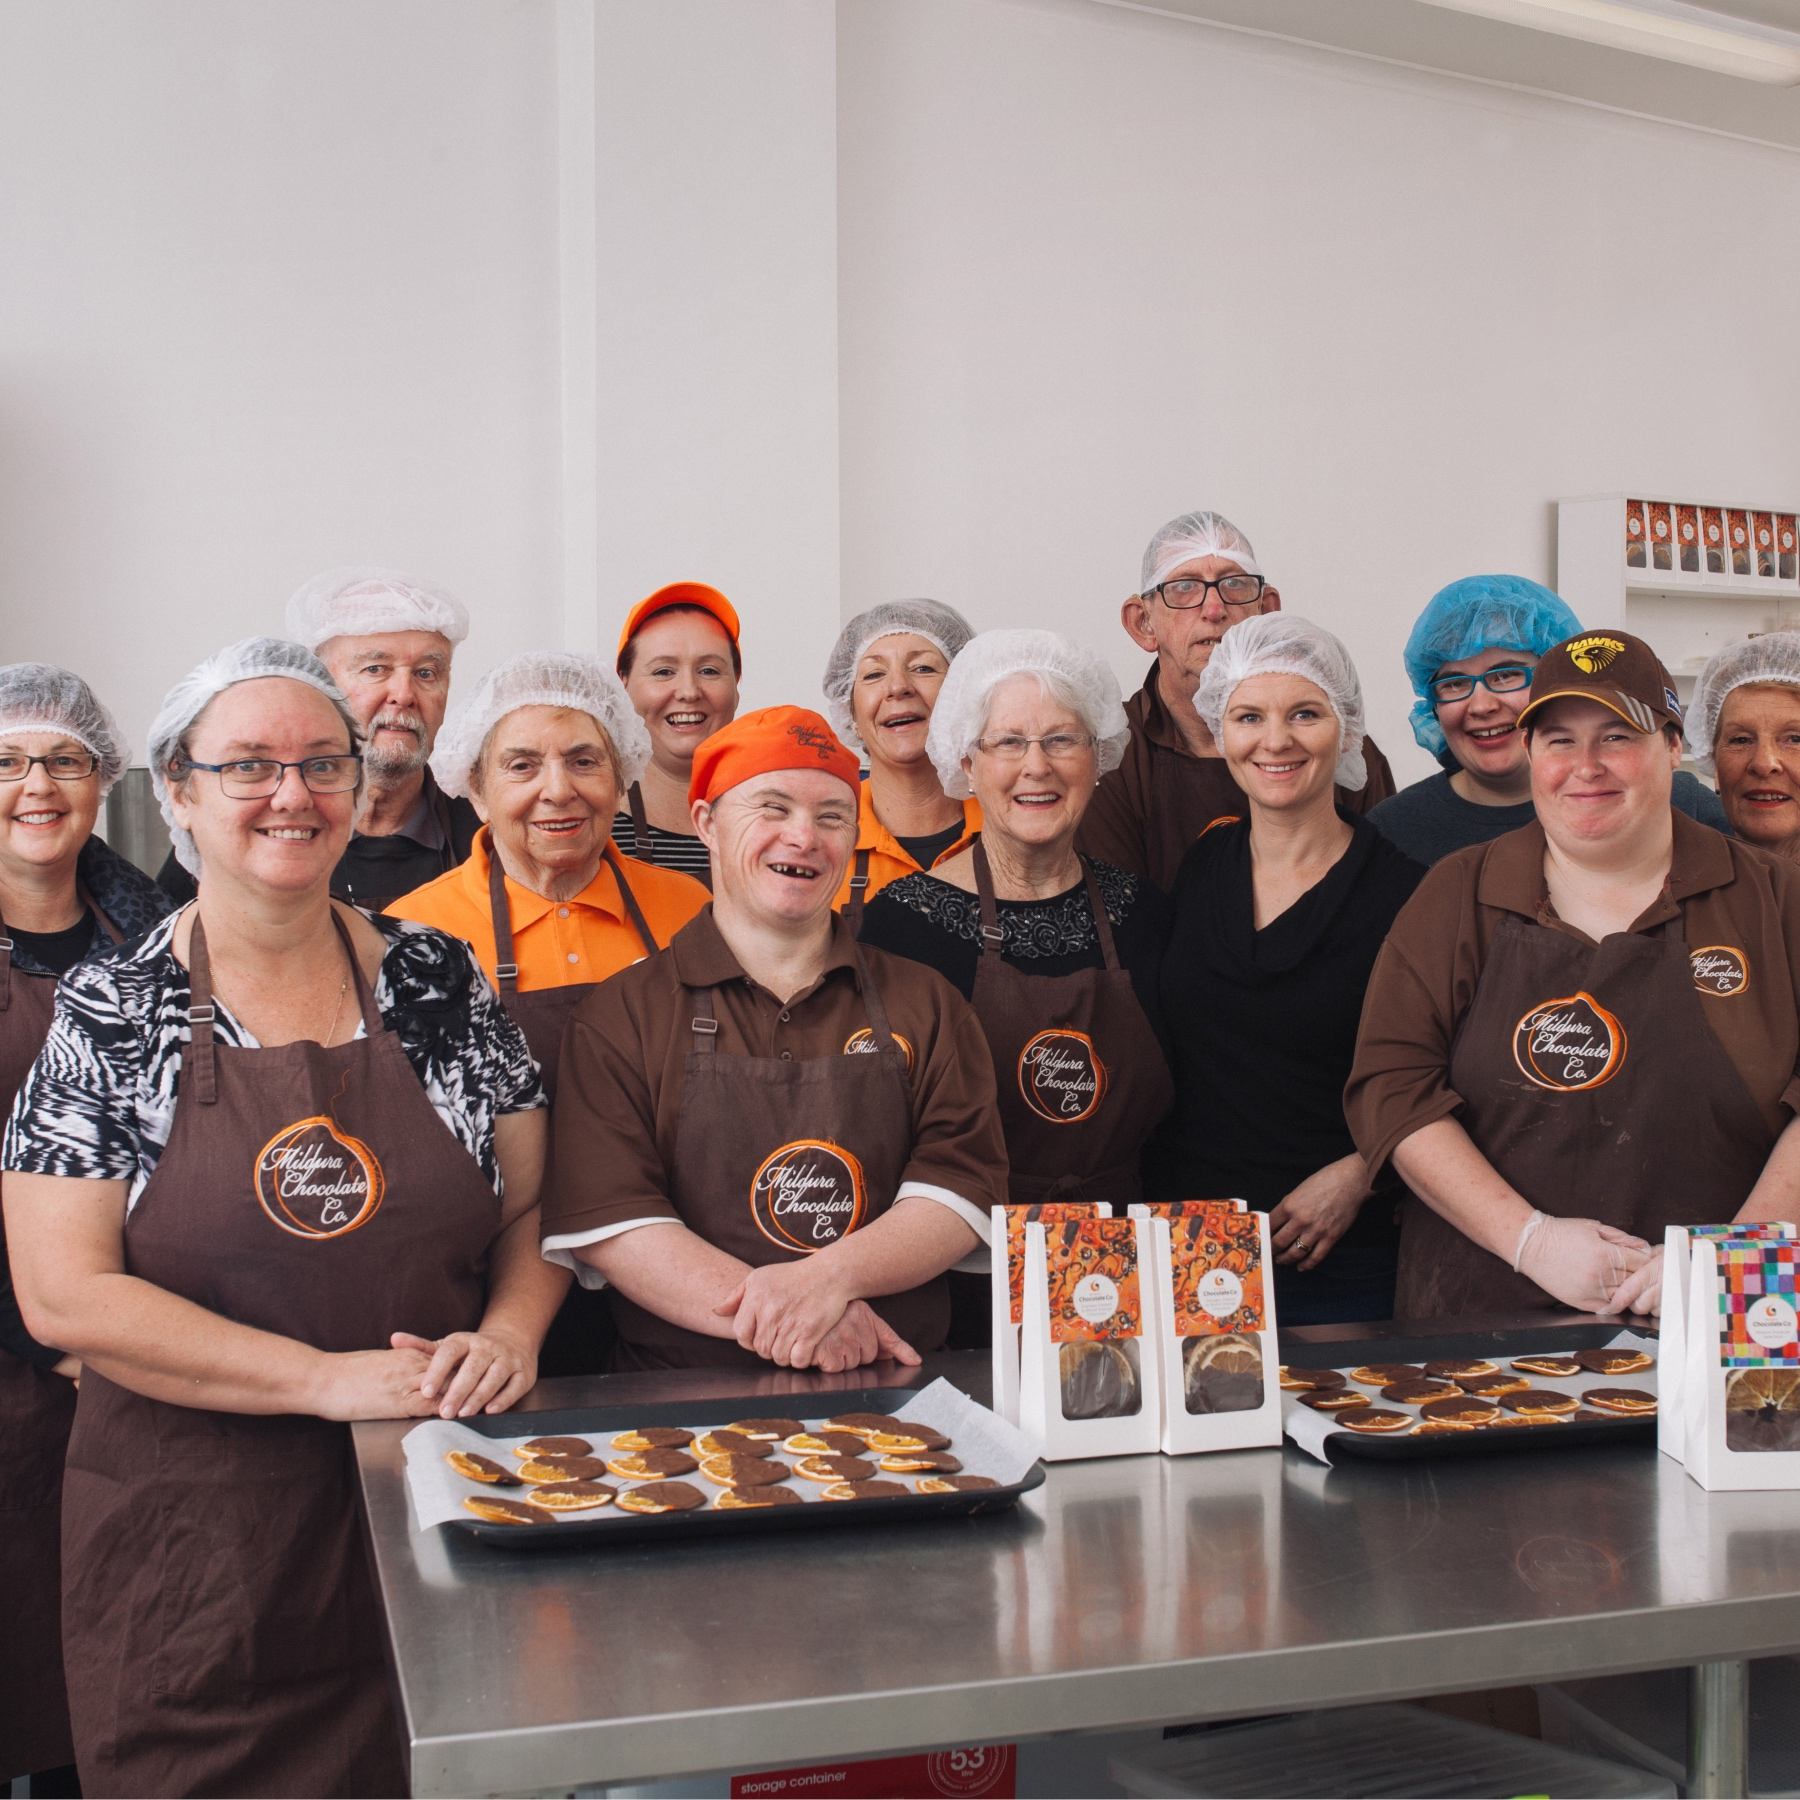 Mildura Chocolate Company are a chocolate manufacturing co-op in Mildura, Victoria